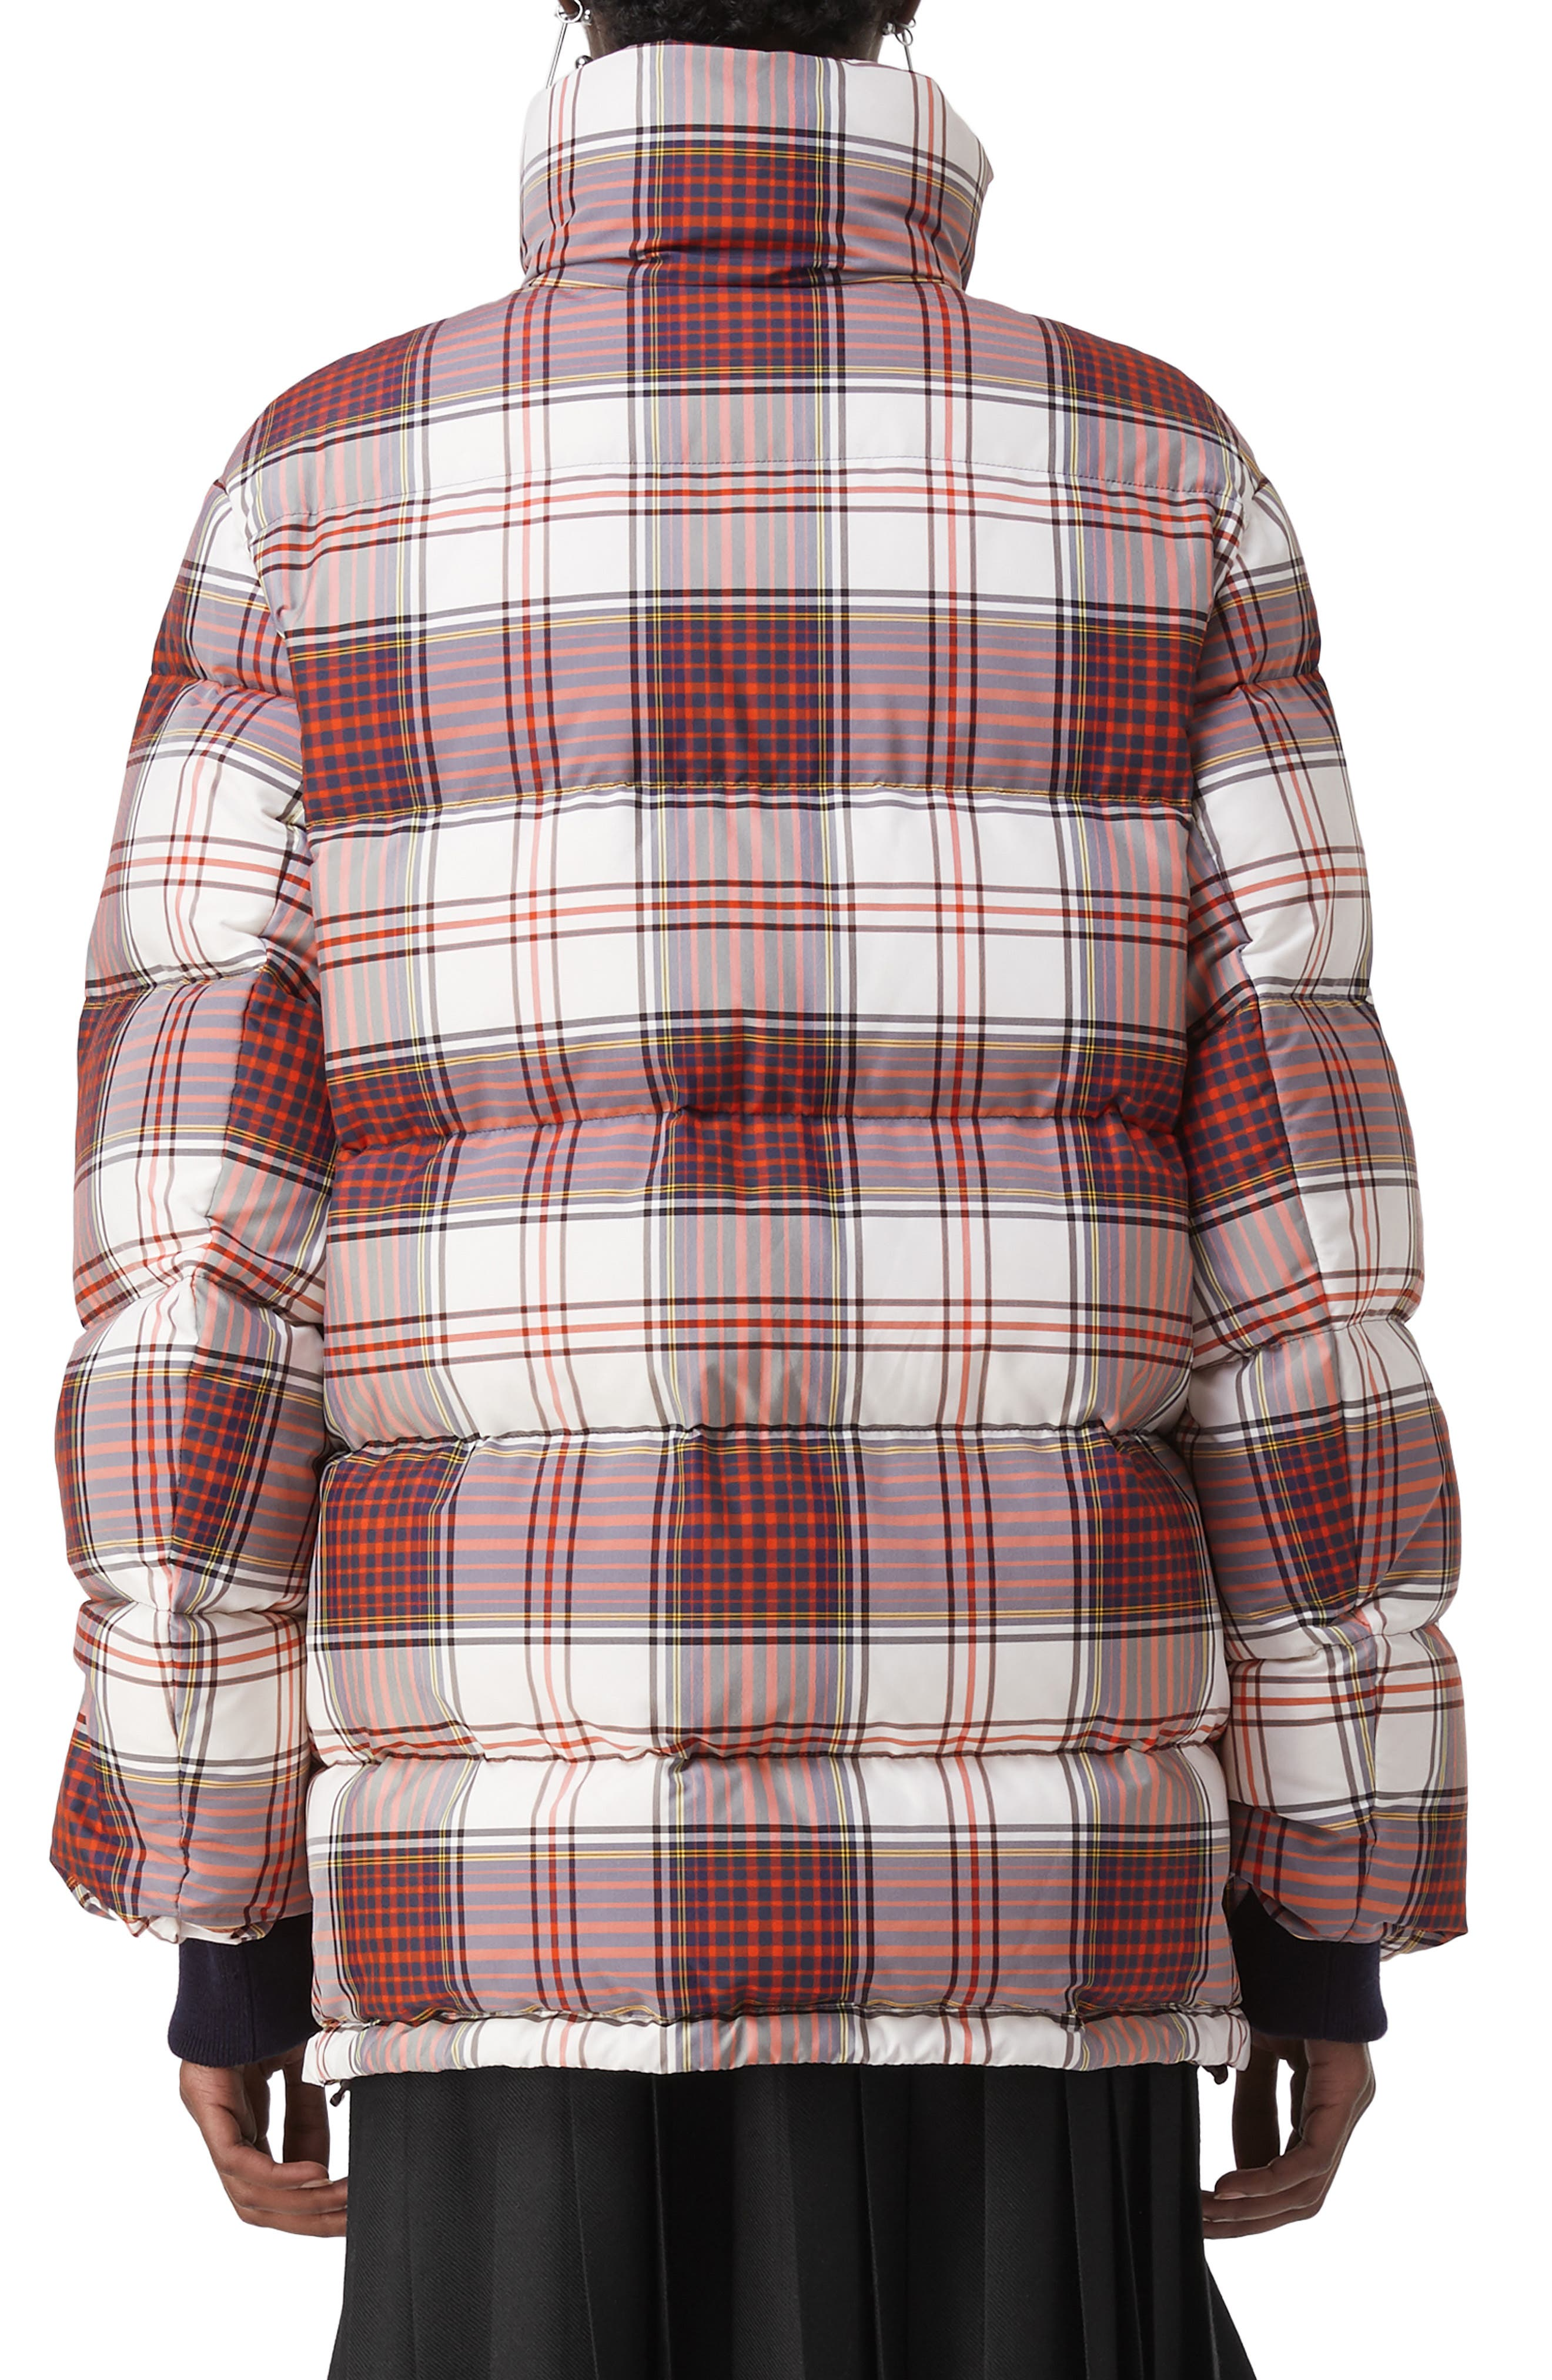 Selsey Check Print Down Coat,                             Alternate thumbnail 2, color,                             OFF WHITE CHK